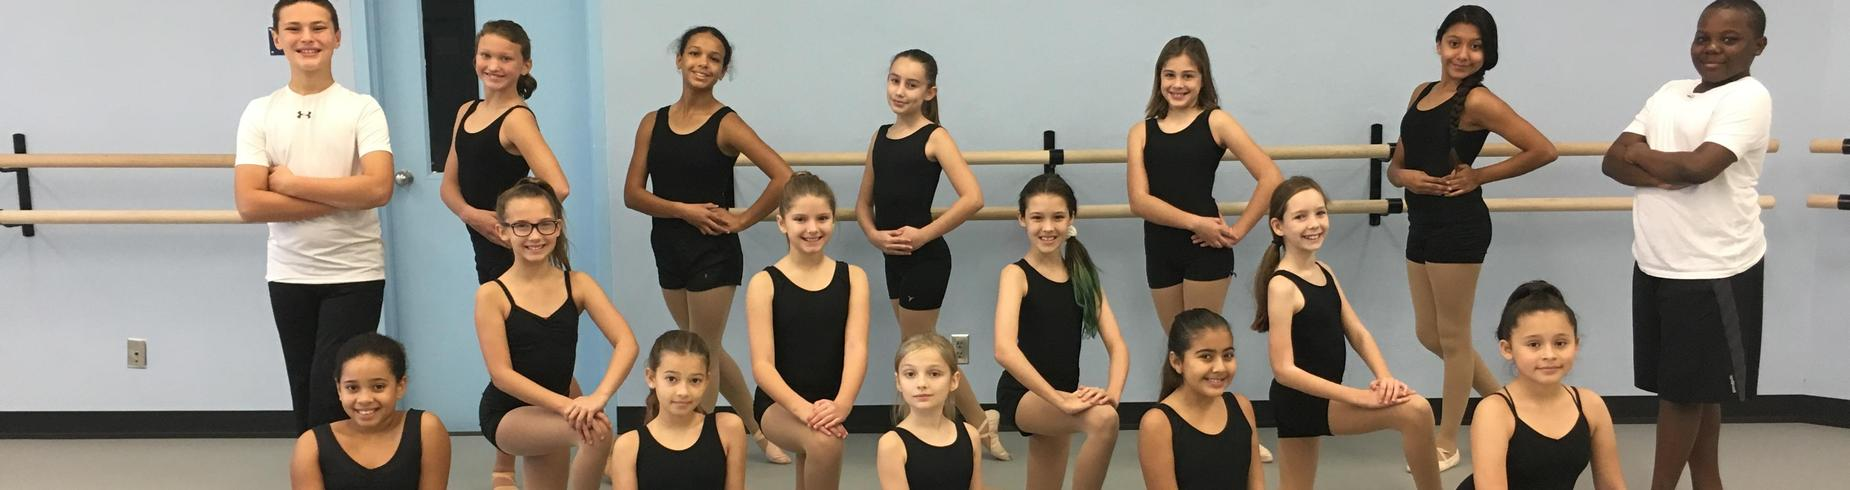 dance students in ballet pose